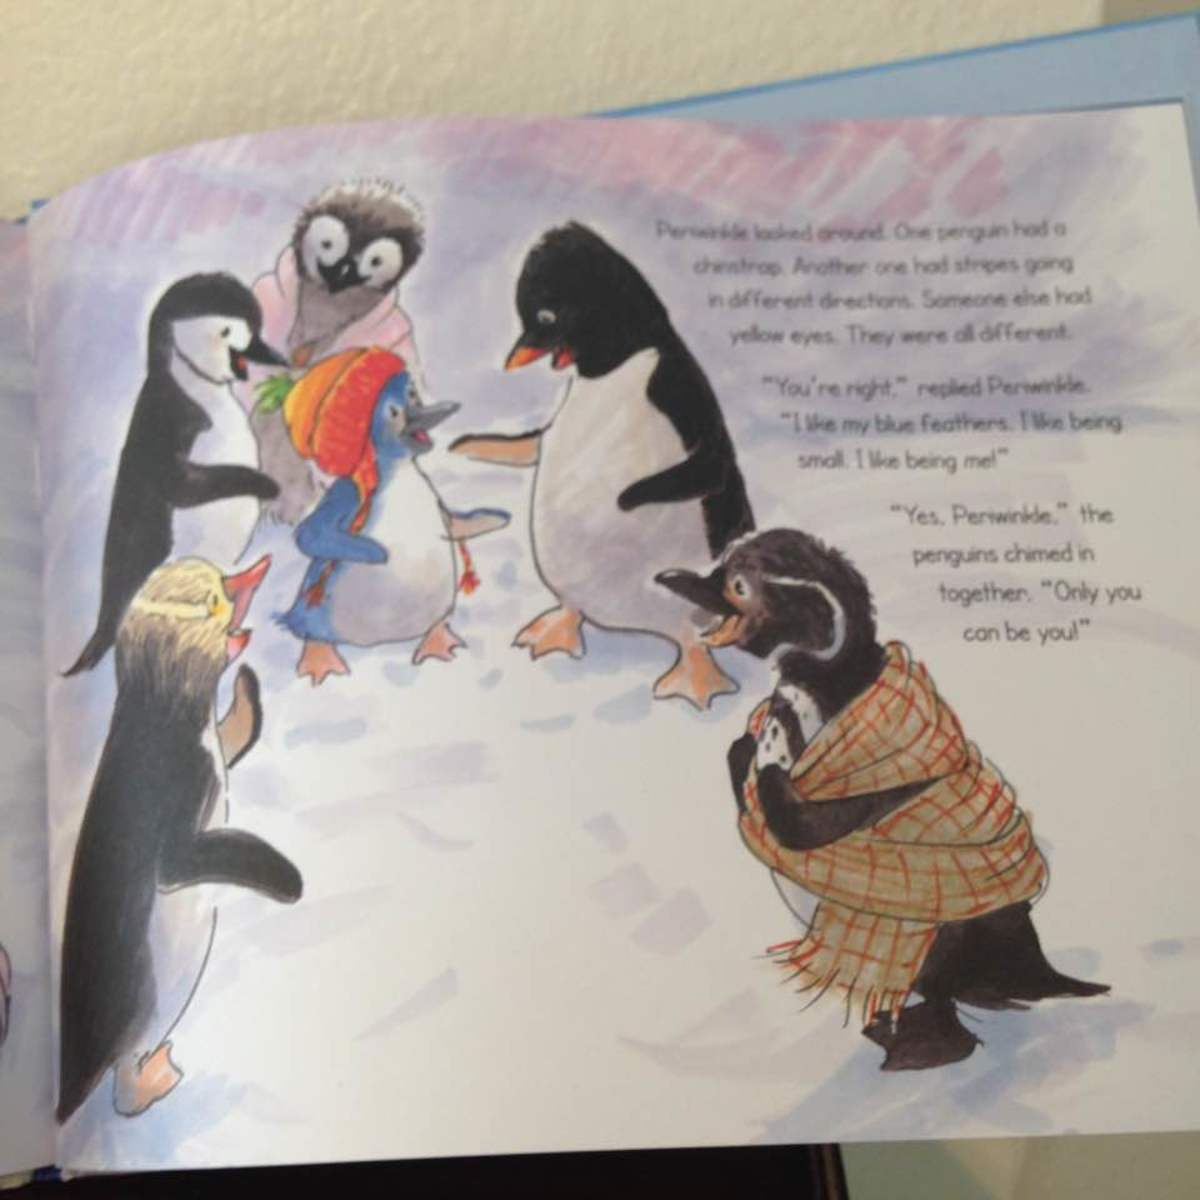 Periwinkle is the only blue penguin in her group